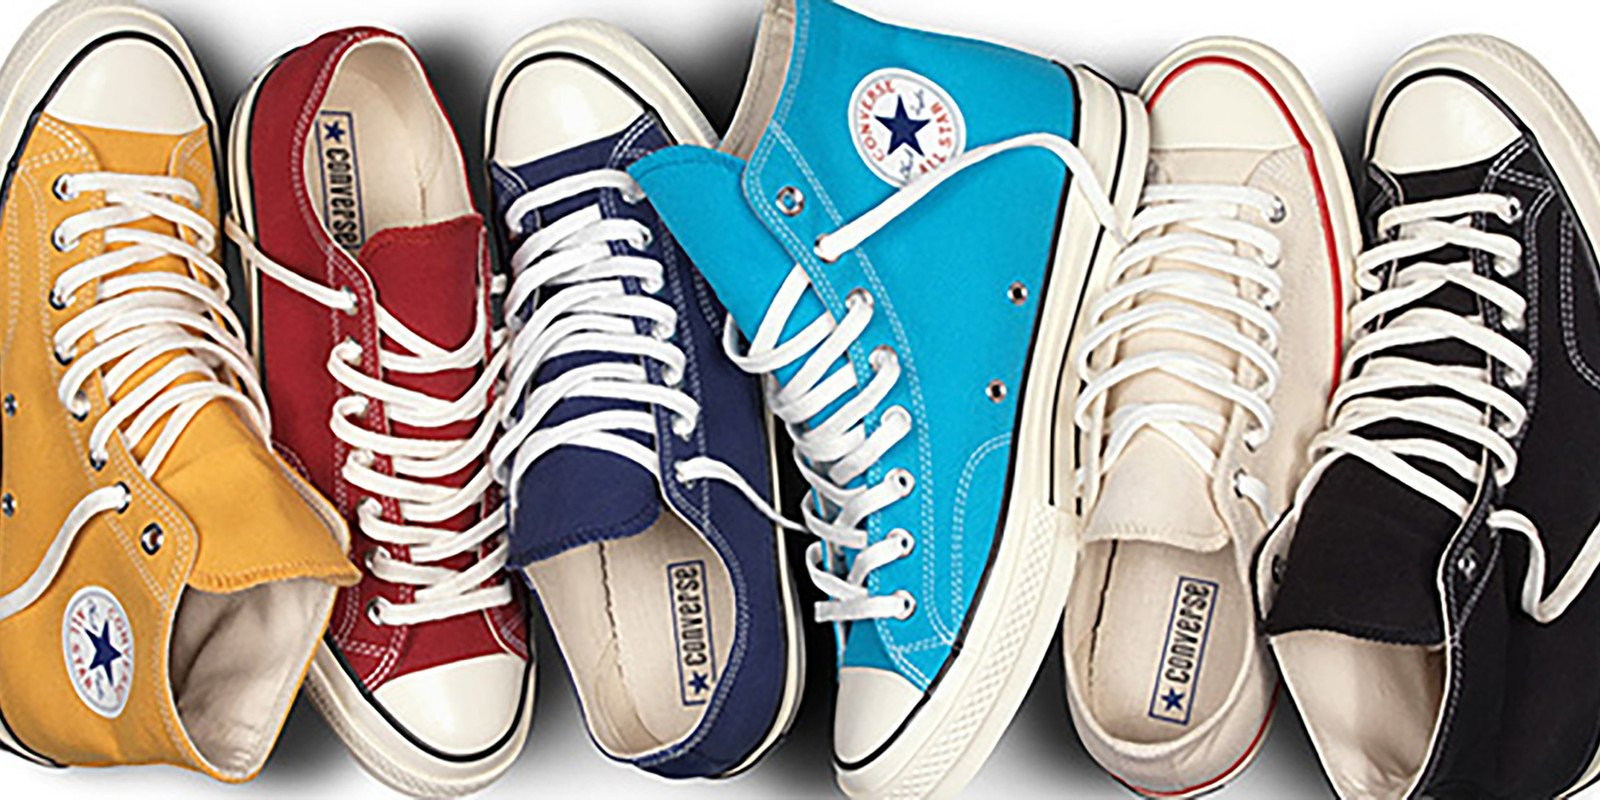 f61ad64b0be7d9 Colabs that Helped Make the Converse Chuck Taylor More Relevant Than Ever  THE ICONIC Edition